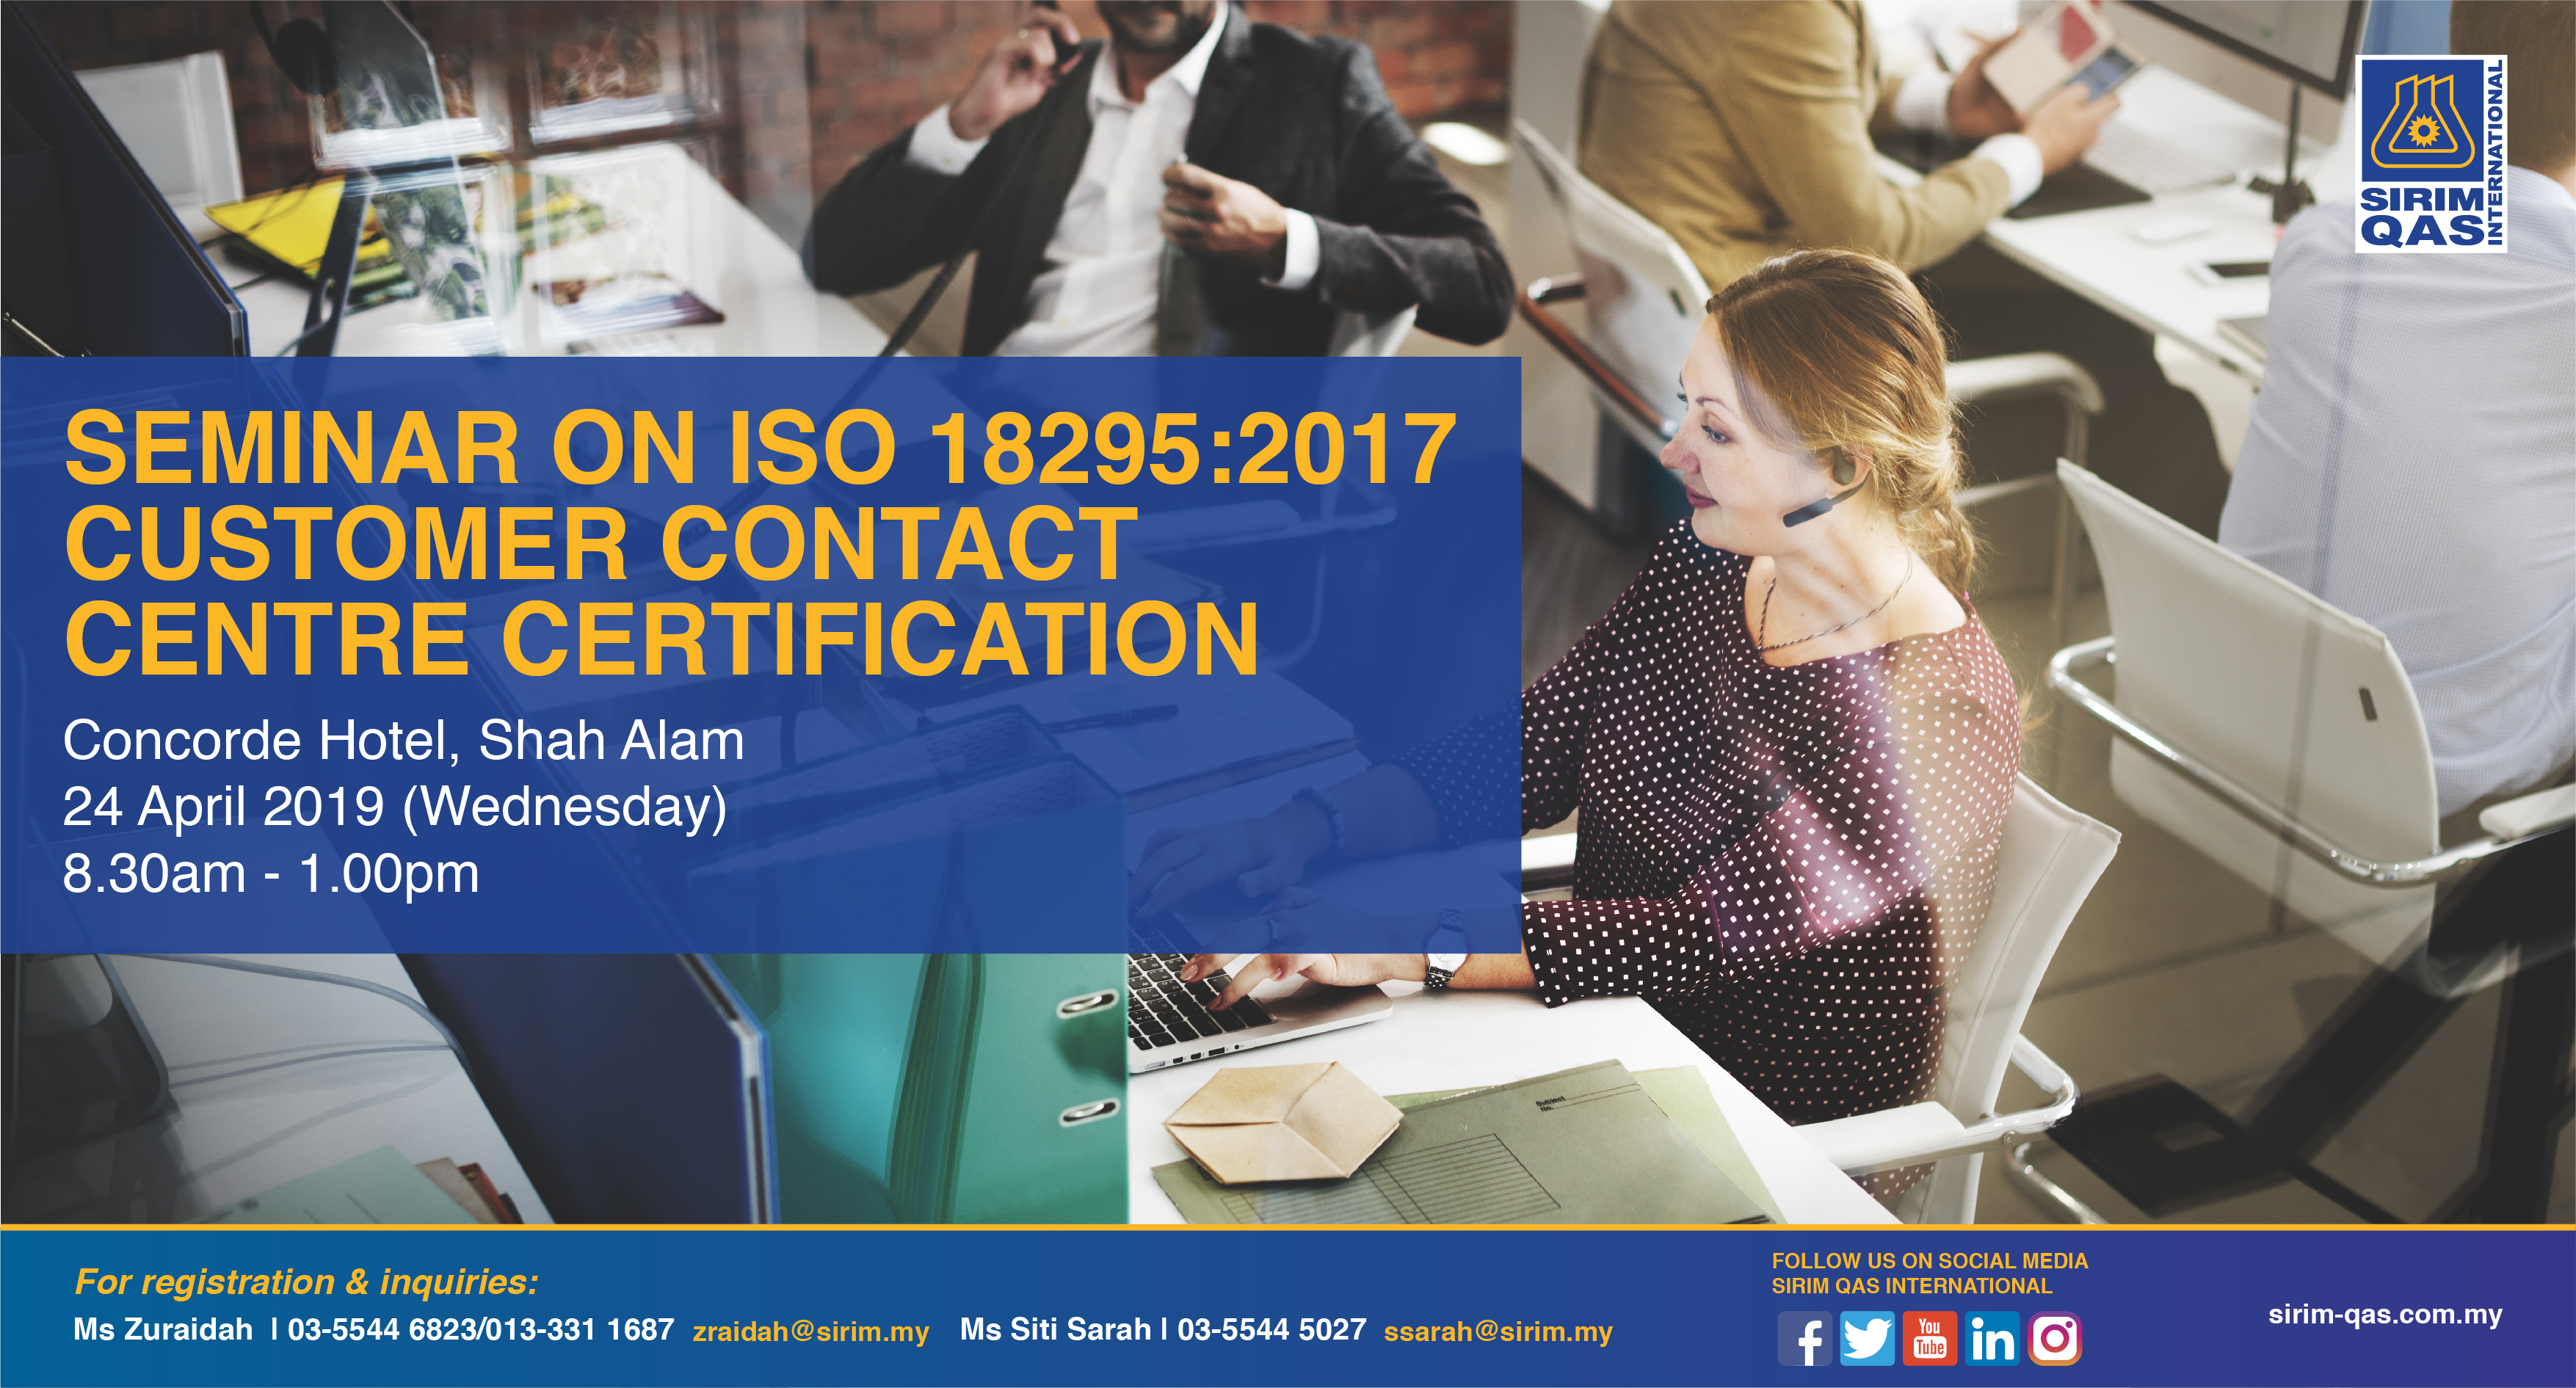 SIRIM : INVITATION TO SEMINAR ON ISO 18295:2017 CUSTOMER CONTACT CENTRE CERTIFICATION | 24 APRIL 2019 – WED | CONCORDE HOTEL SHAH ALAM